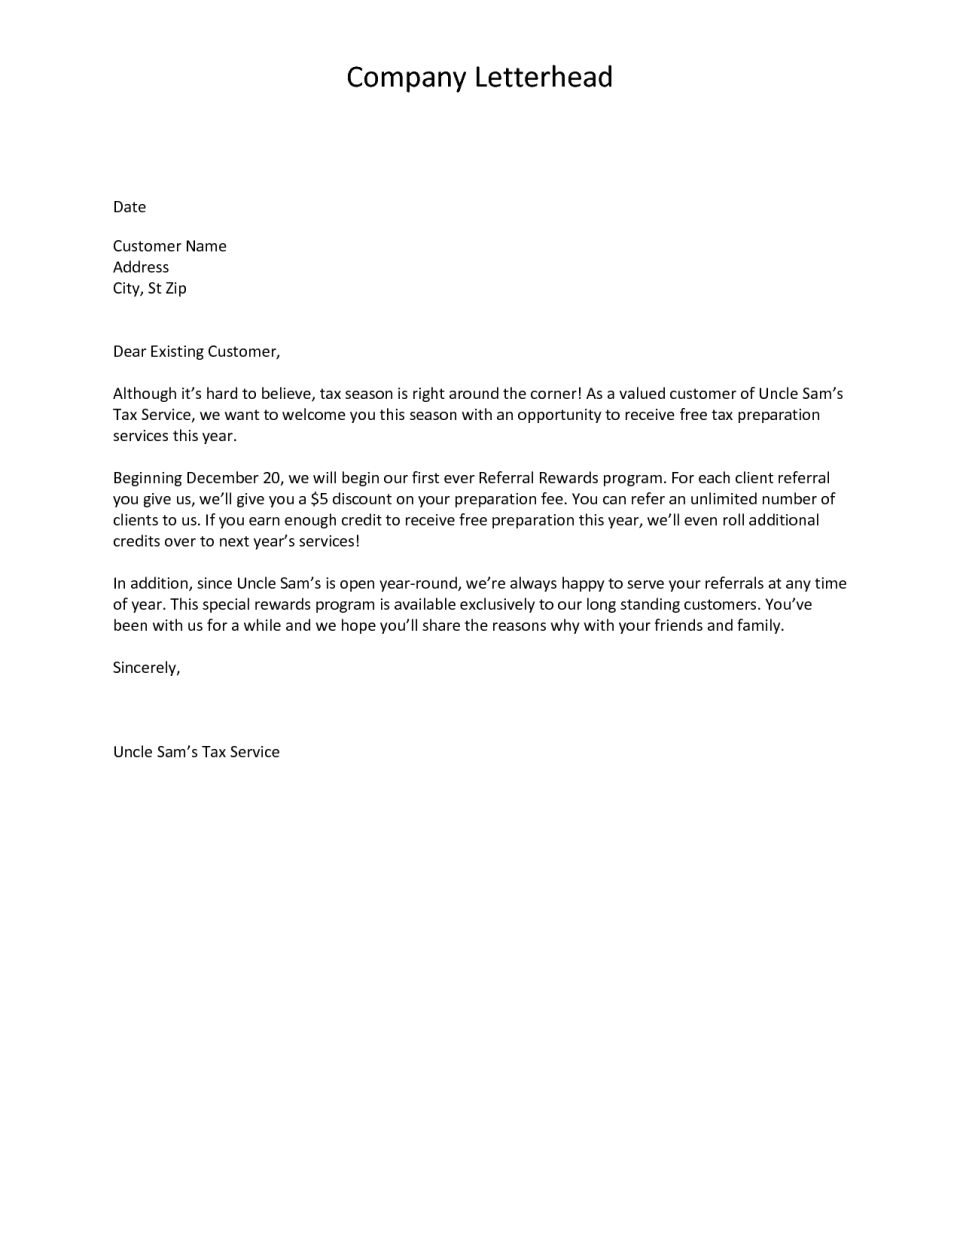 real estate offer letter template free example-free printable real estate introduction letter template real estate introduction letter template real estate pany introduction letter sample real estate introduction letter template 5-h